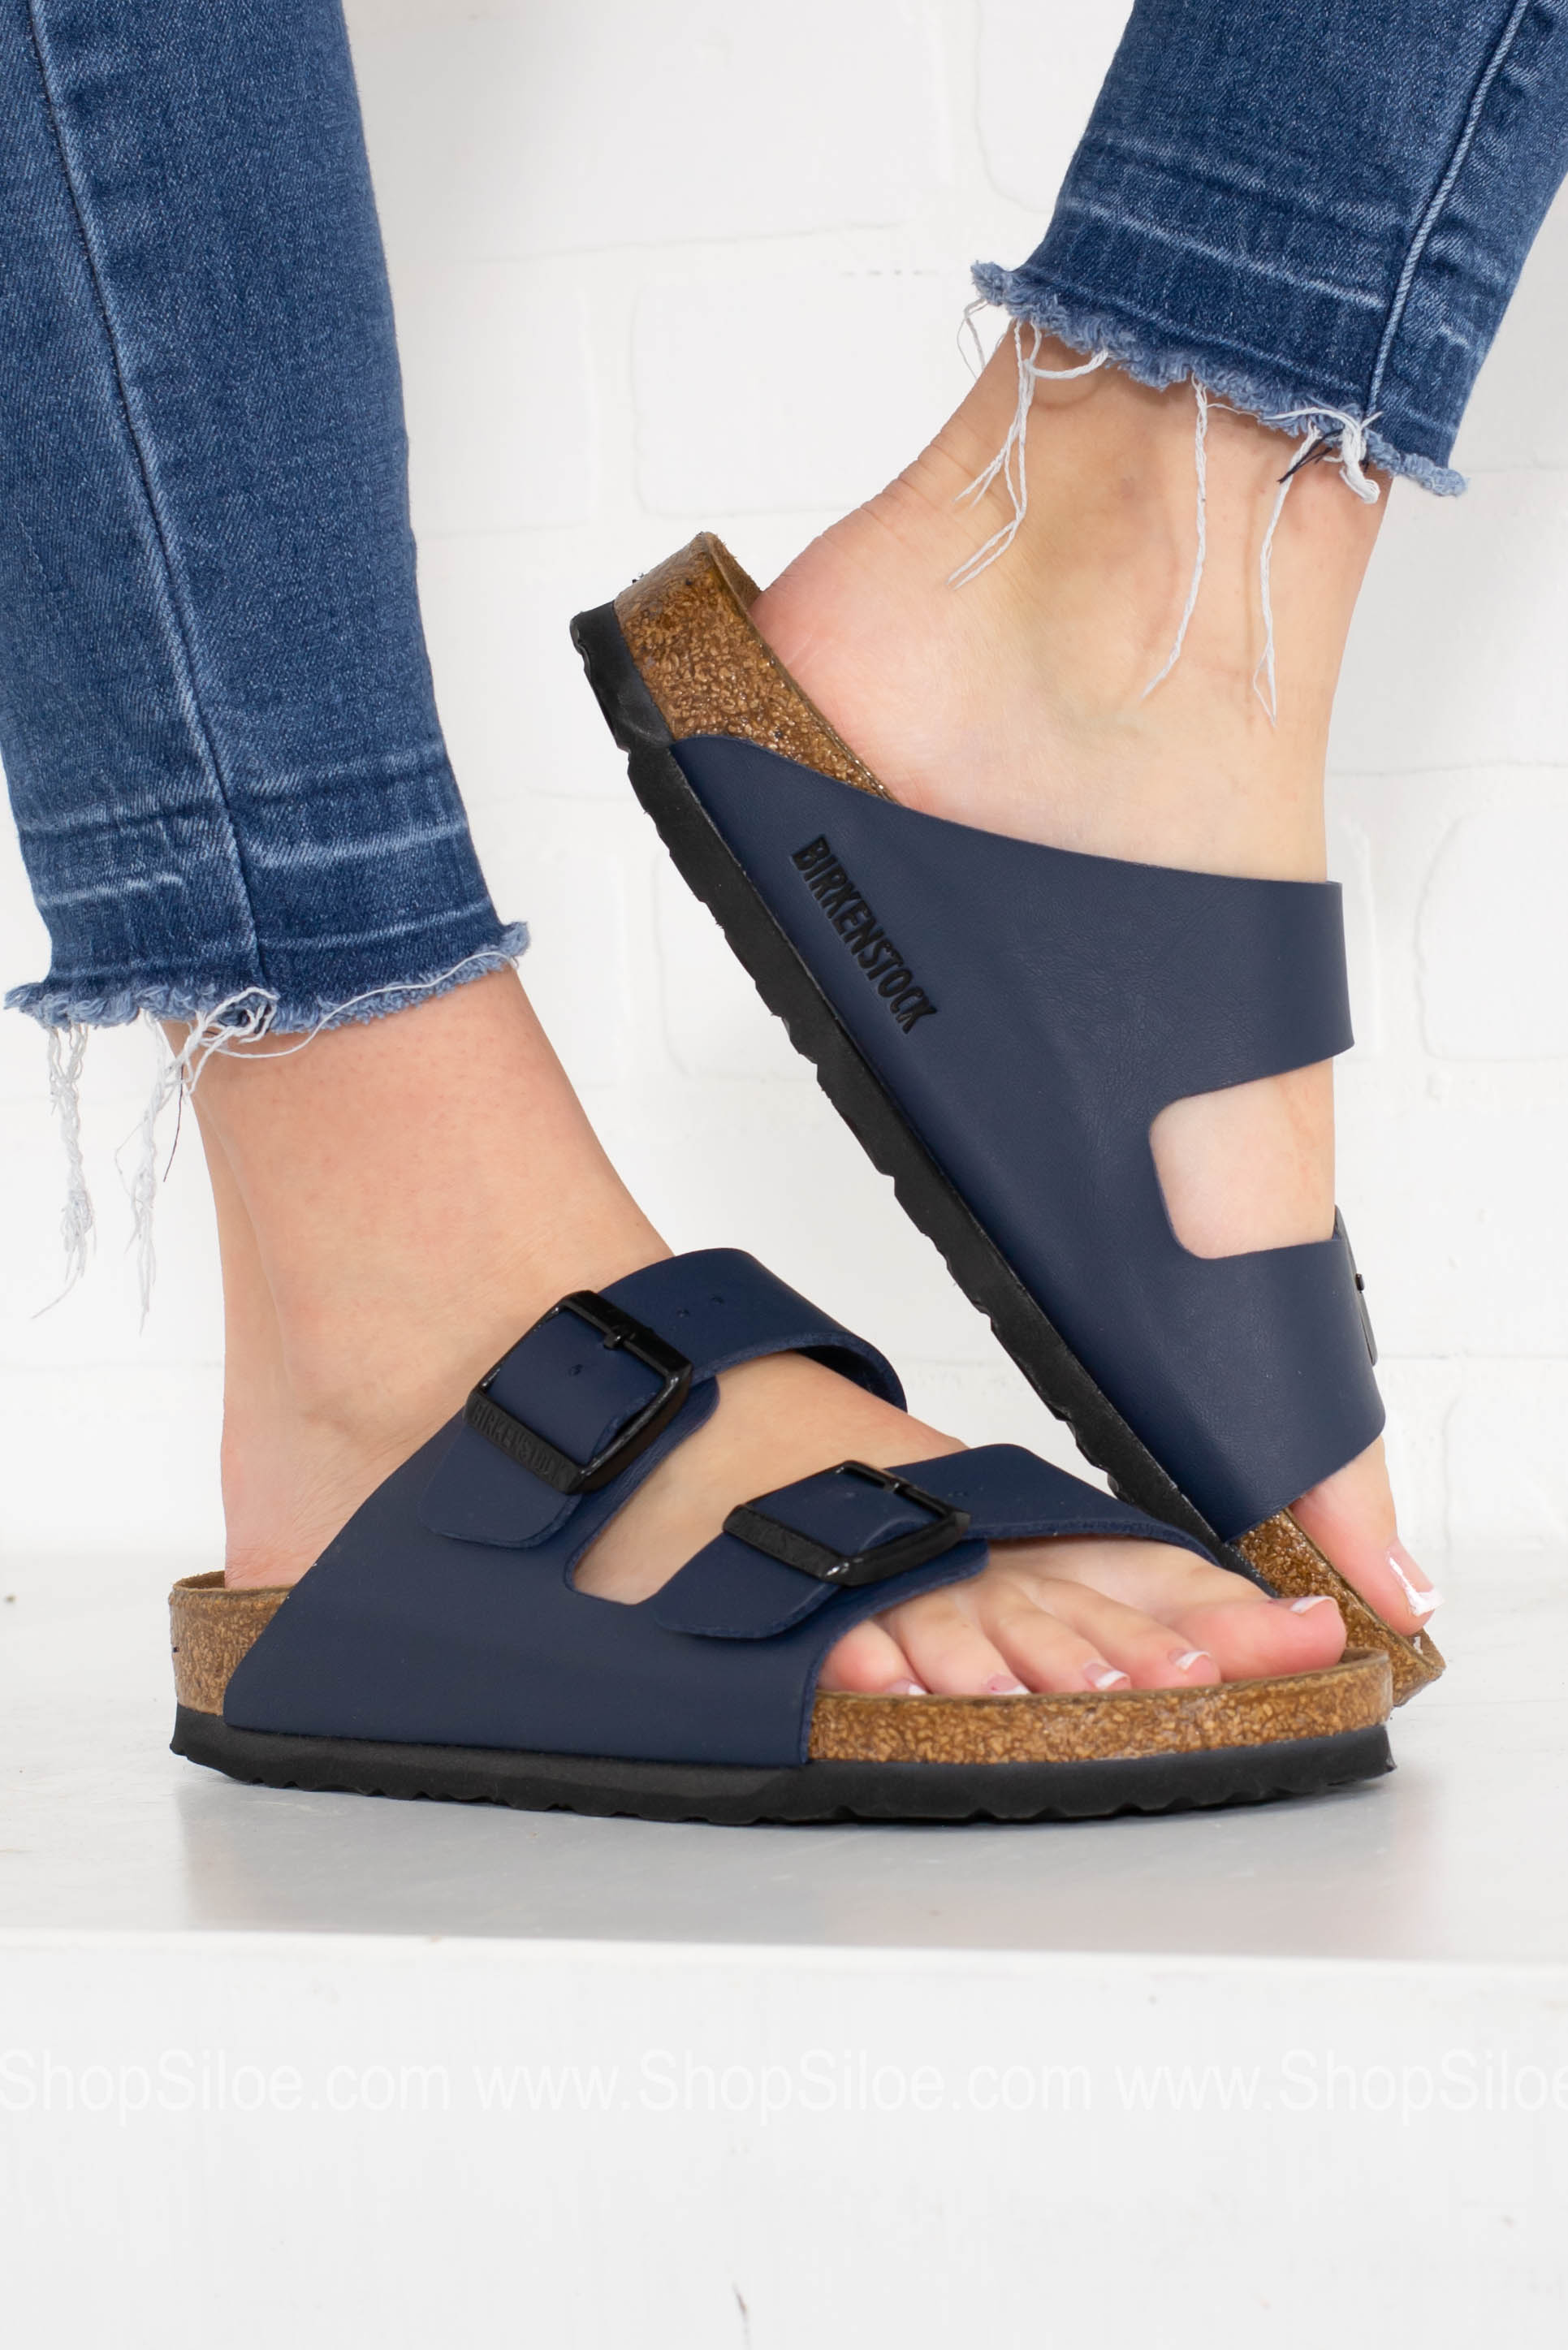 08b453e8b74 Arizona Birko-Flor Soft-Bed Birkenstocks